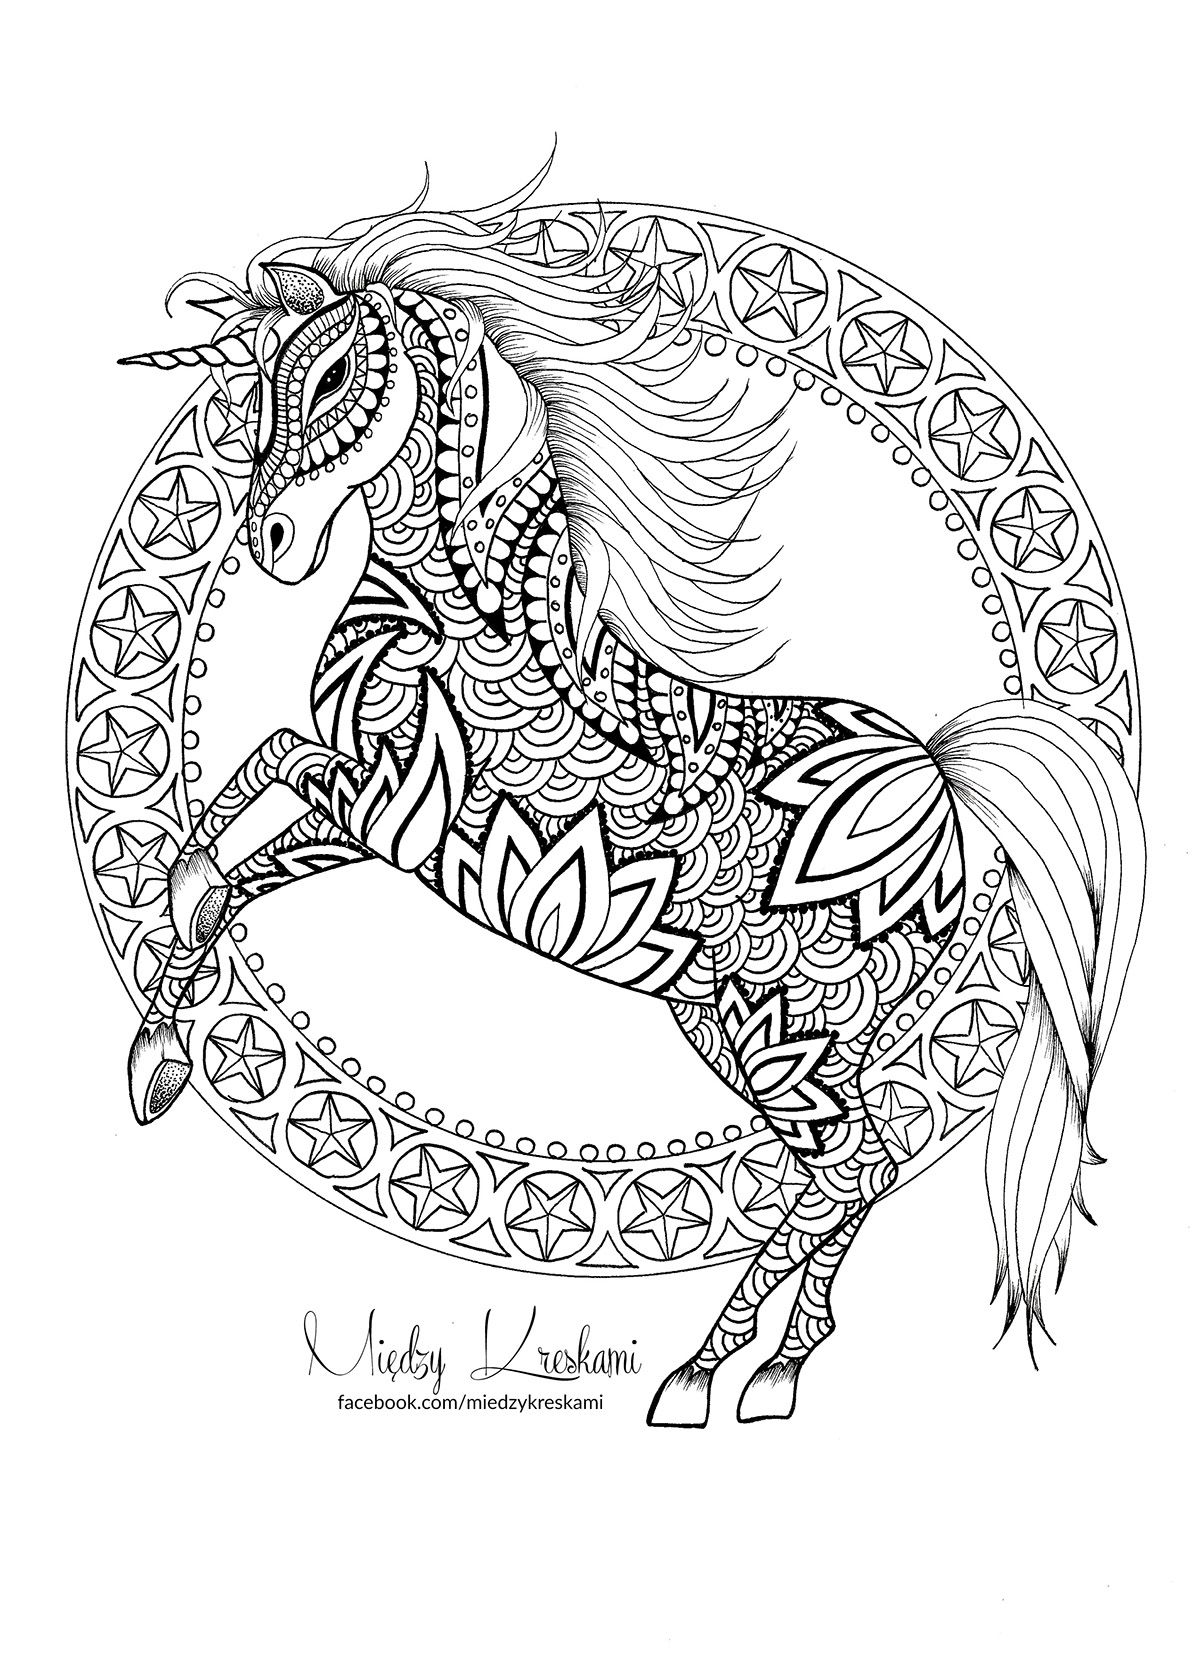 Unicorn Coloring Page I Made For My Fanpage Http Facebook Com Miedzykreskami Coloured Also By Me Unicorn Coloring Pages Horse Coloring Pages Coloring Pages